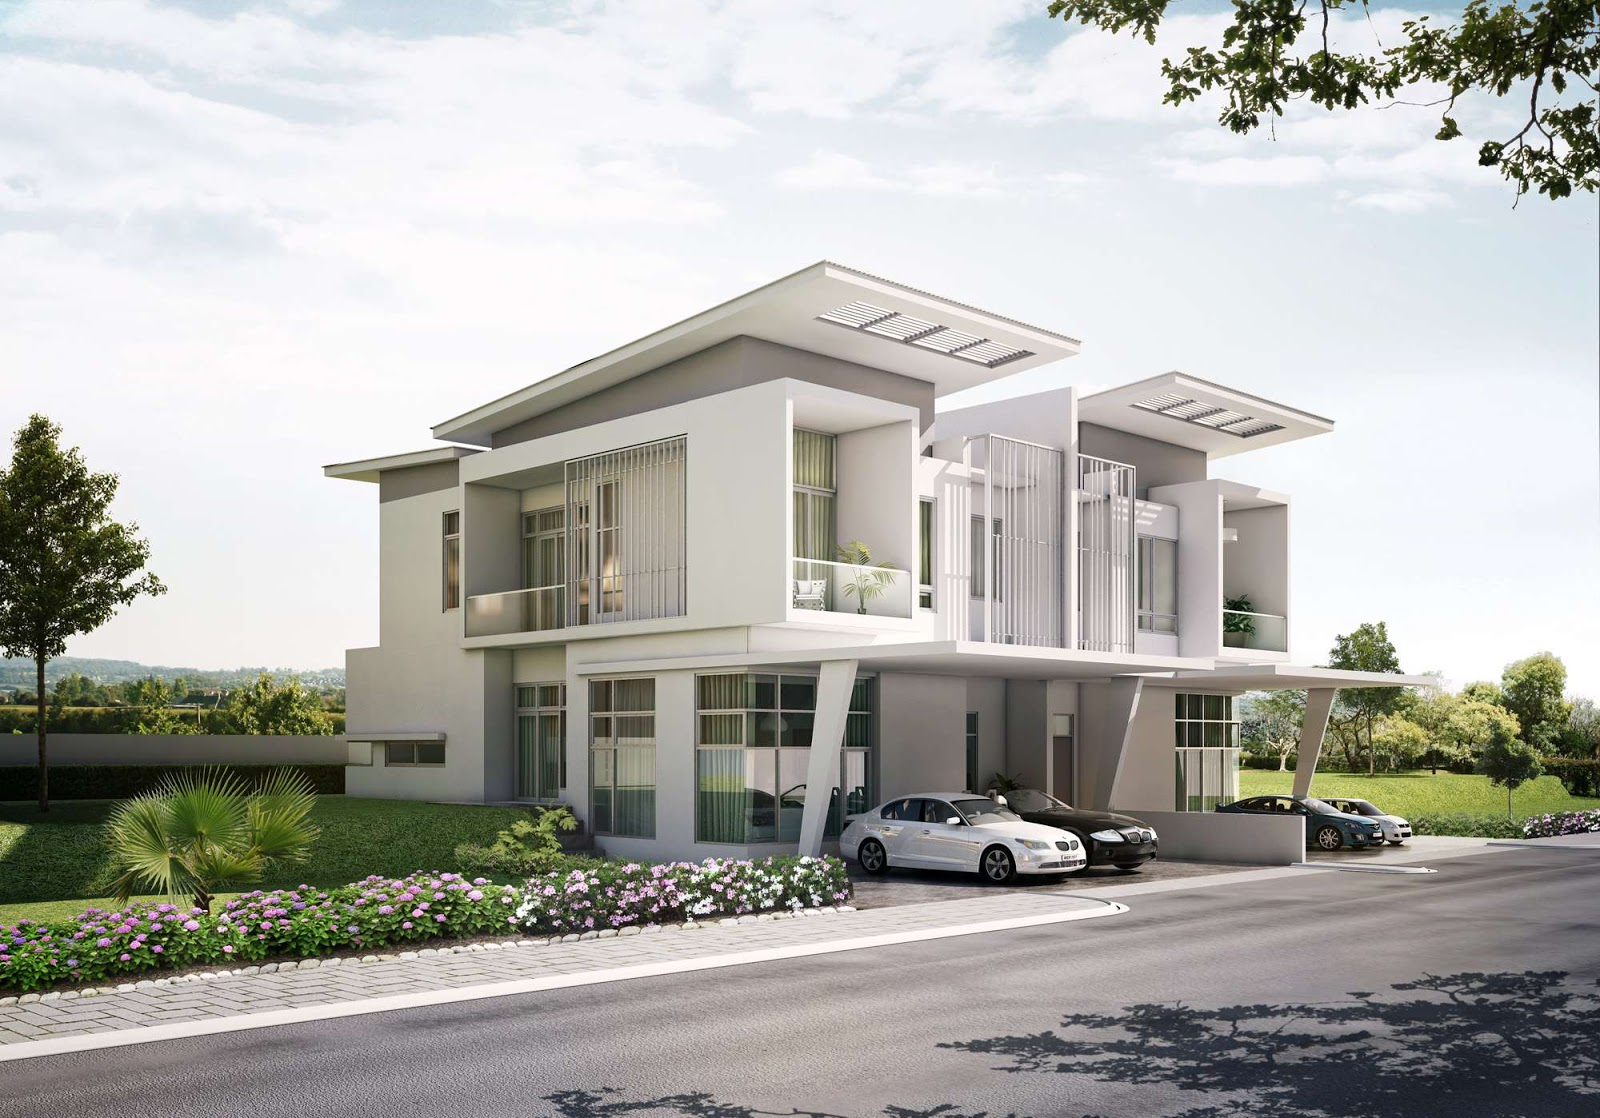 New home designs latest singapore modern homes exterior for Exterior design homes